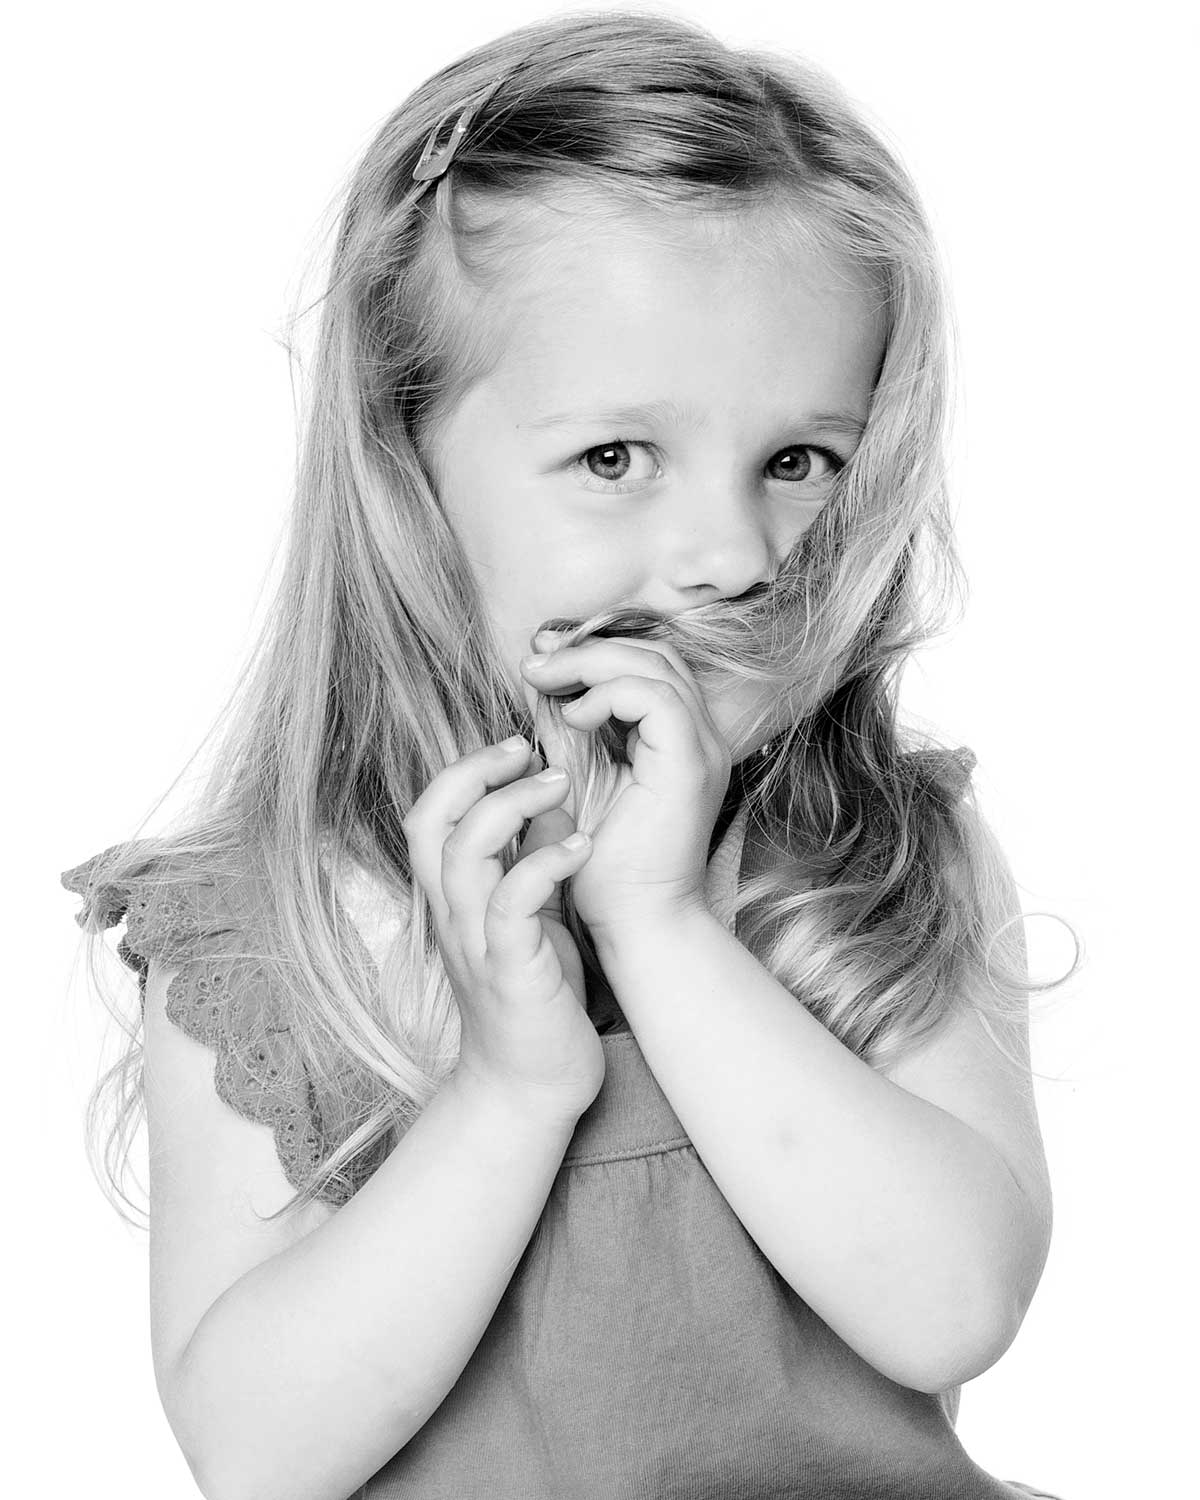 06-Home-Shoot-Toddler-Girl-Hair-Black-White-Shy-Philip-Murray-Photography-Dublin